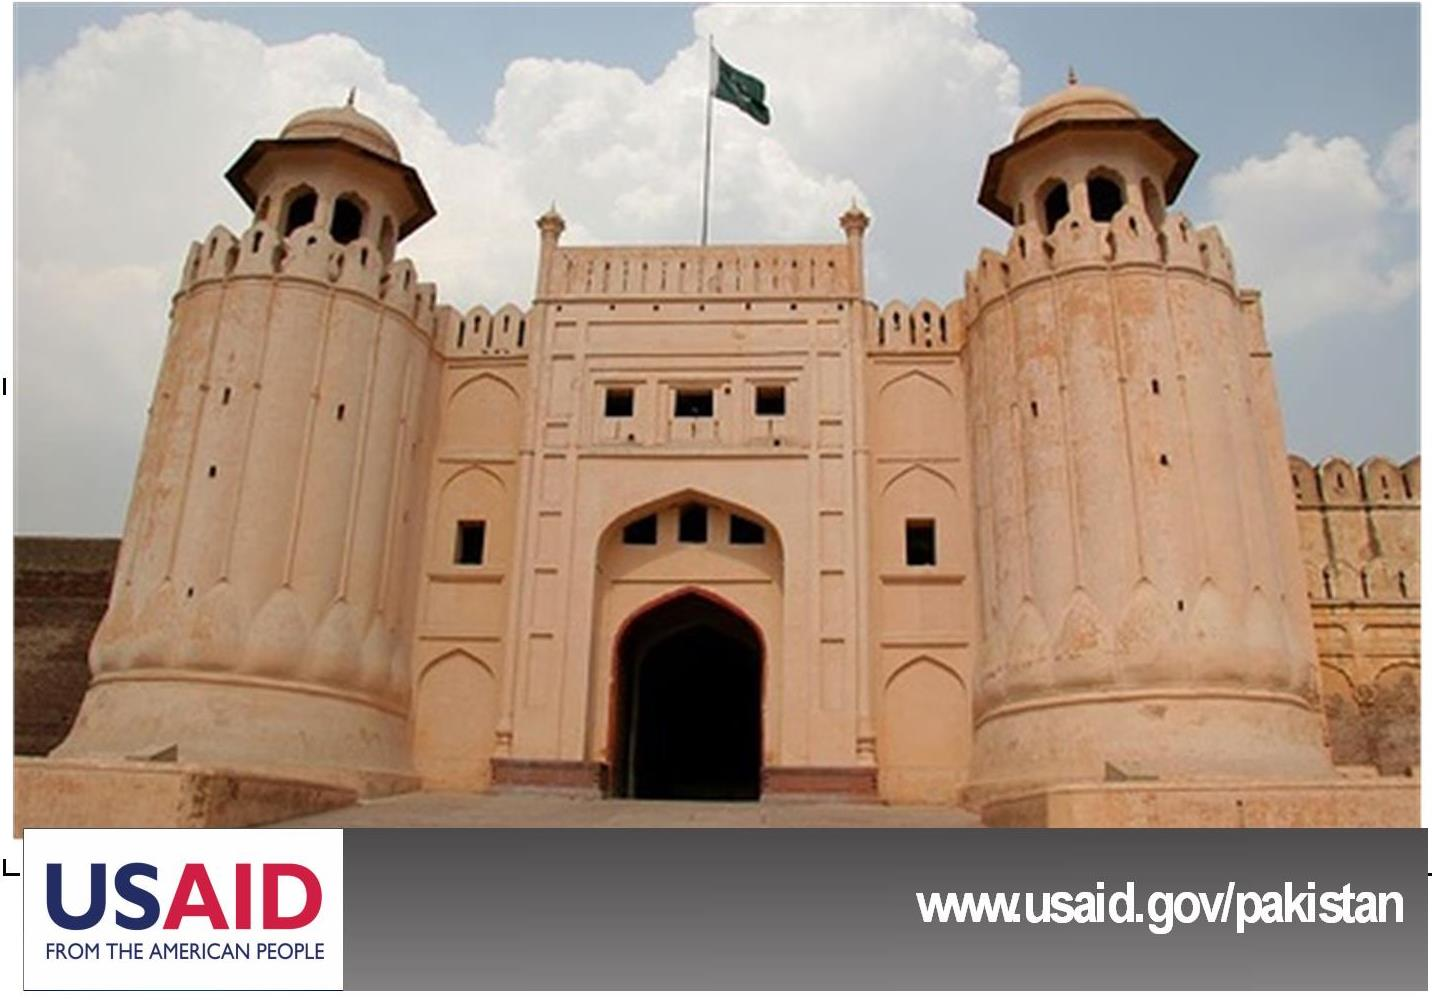 RT @USAID_Pakistan: Are you proud of your #Pakistani #heritage? How are you making #Pakistan a better place to live? #Ilovepakistan http://t.co/9VPC6IXbtL